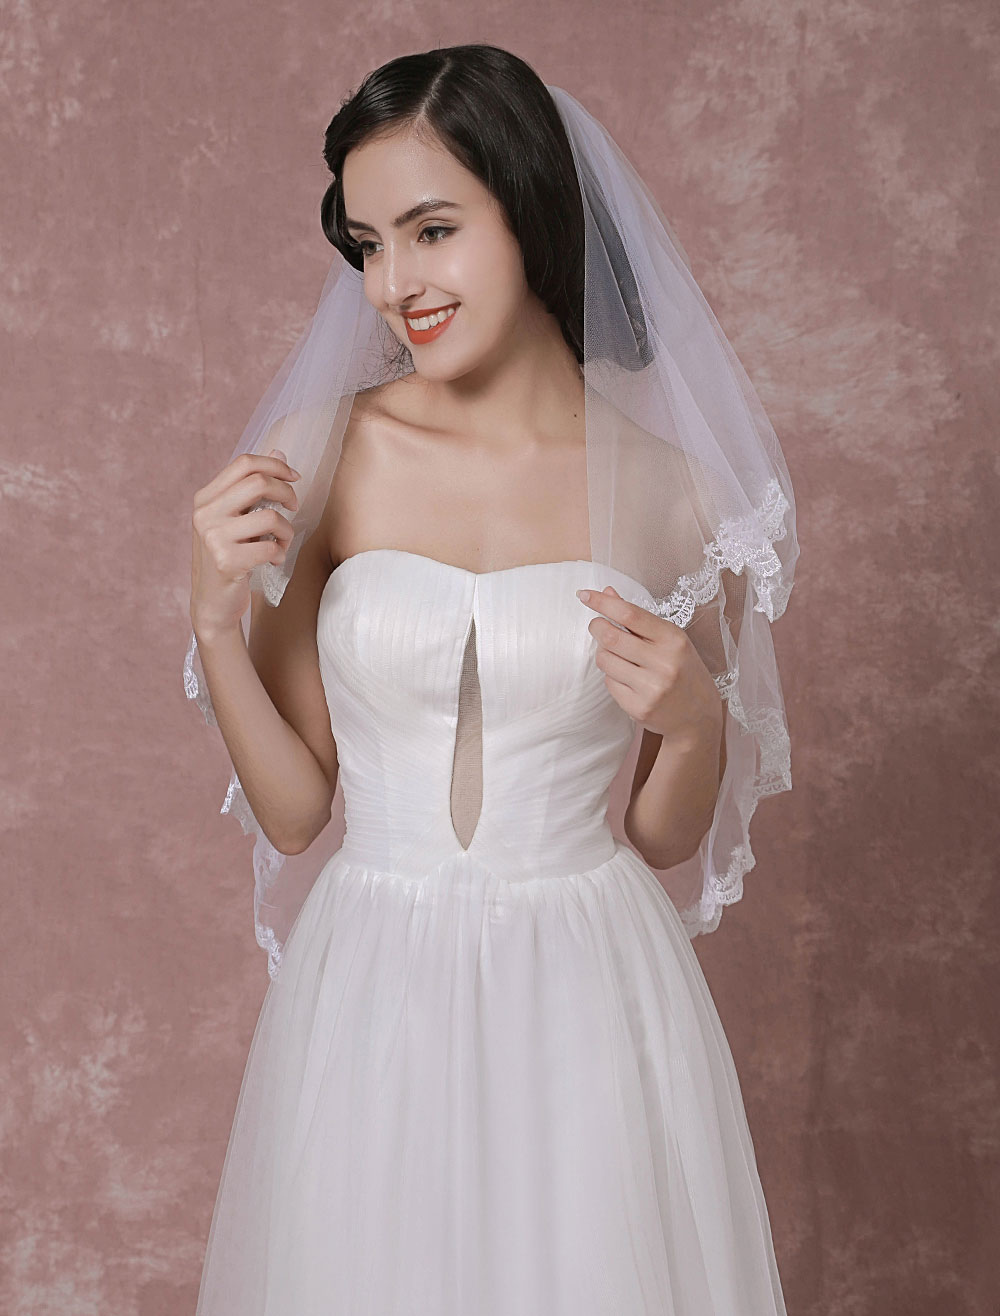 Buy Ivory Wedding Veil Tulle Two-Tier Lace Applique Edge Bridal Veil for $18.04 in Milanoo store